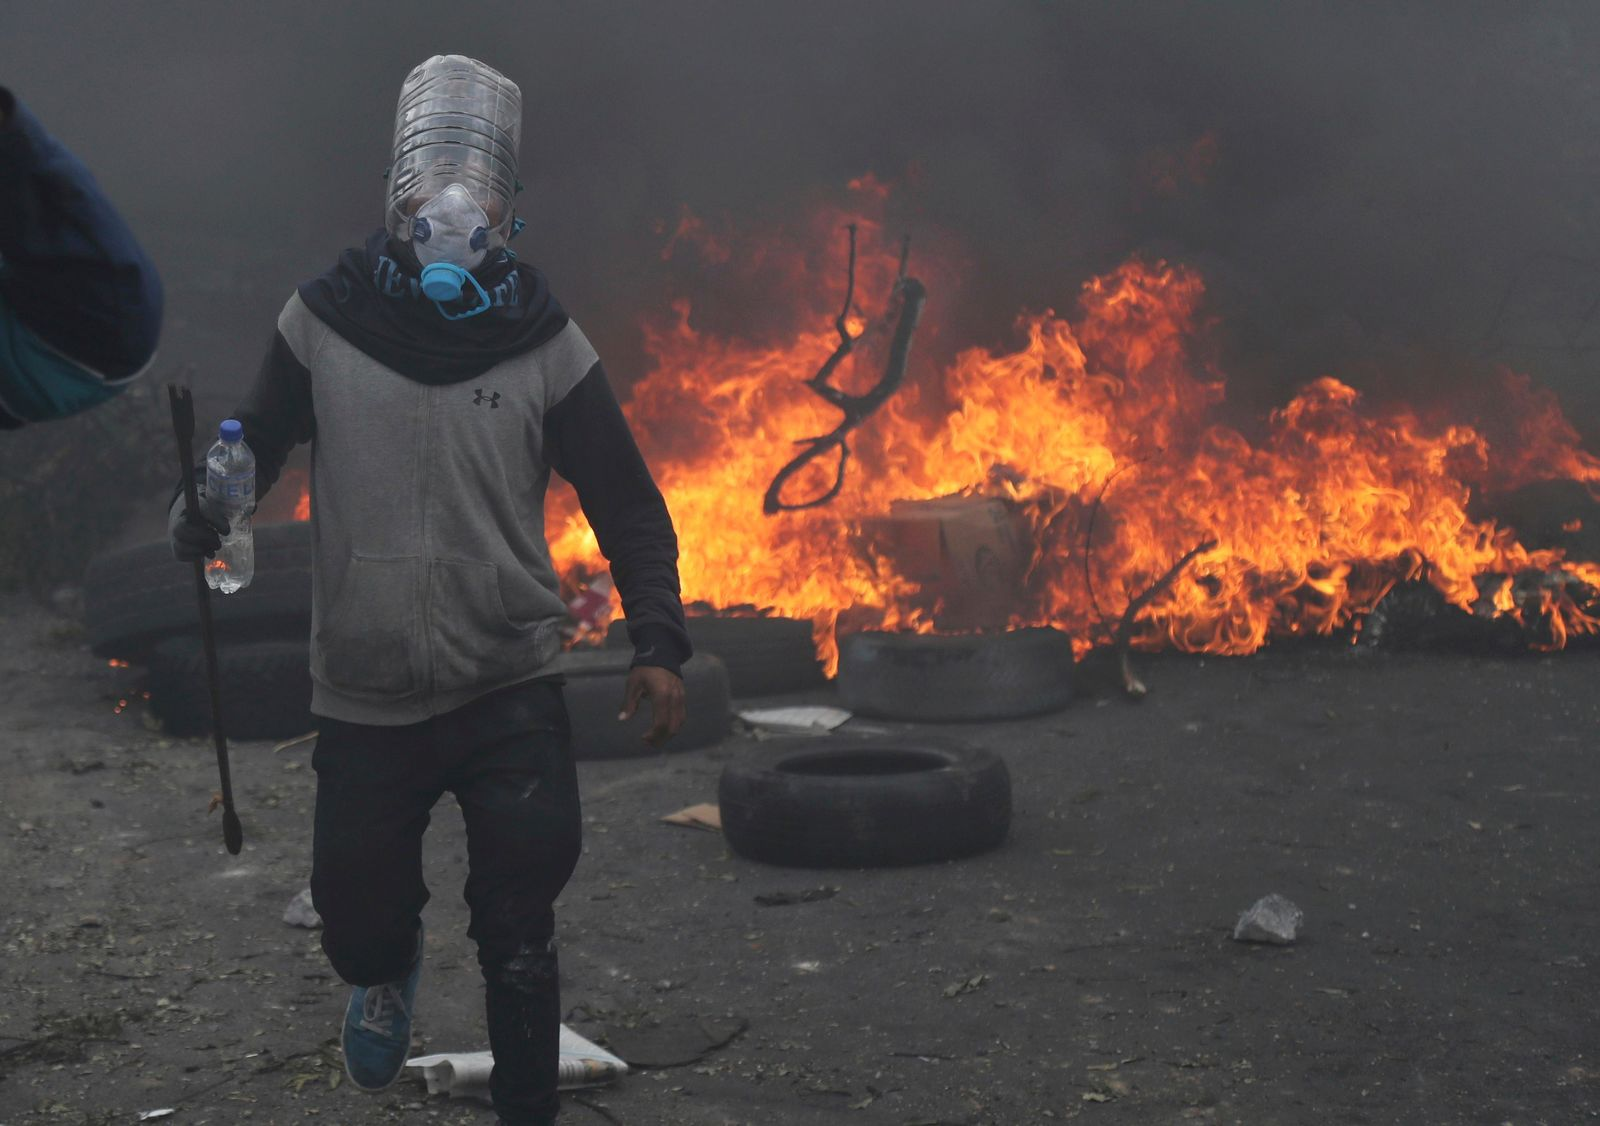 An anti-government demonstrator protects himself with a homemade gas mask during a clash with the police in Quito, Ecuador, Saturday, Oct. 12, 2019. (AP Photo/Dolores Ochoa)